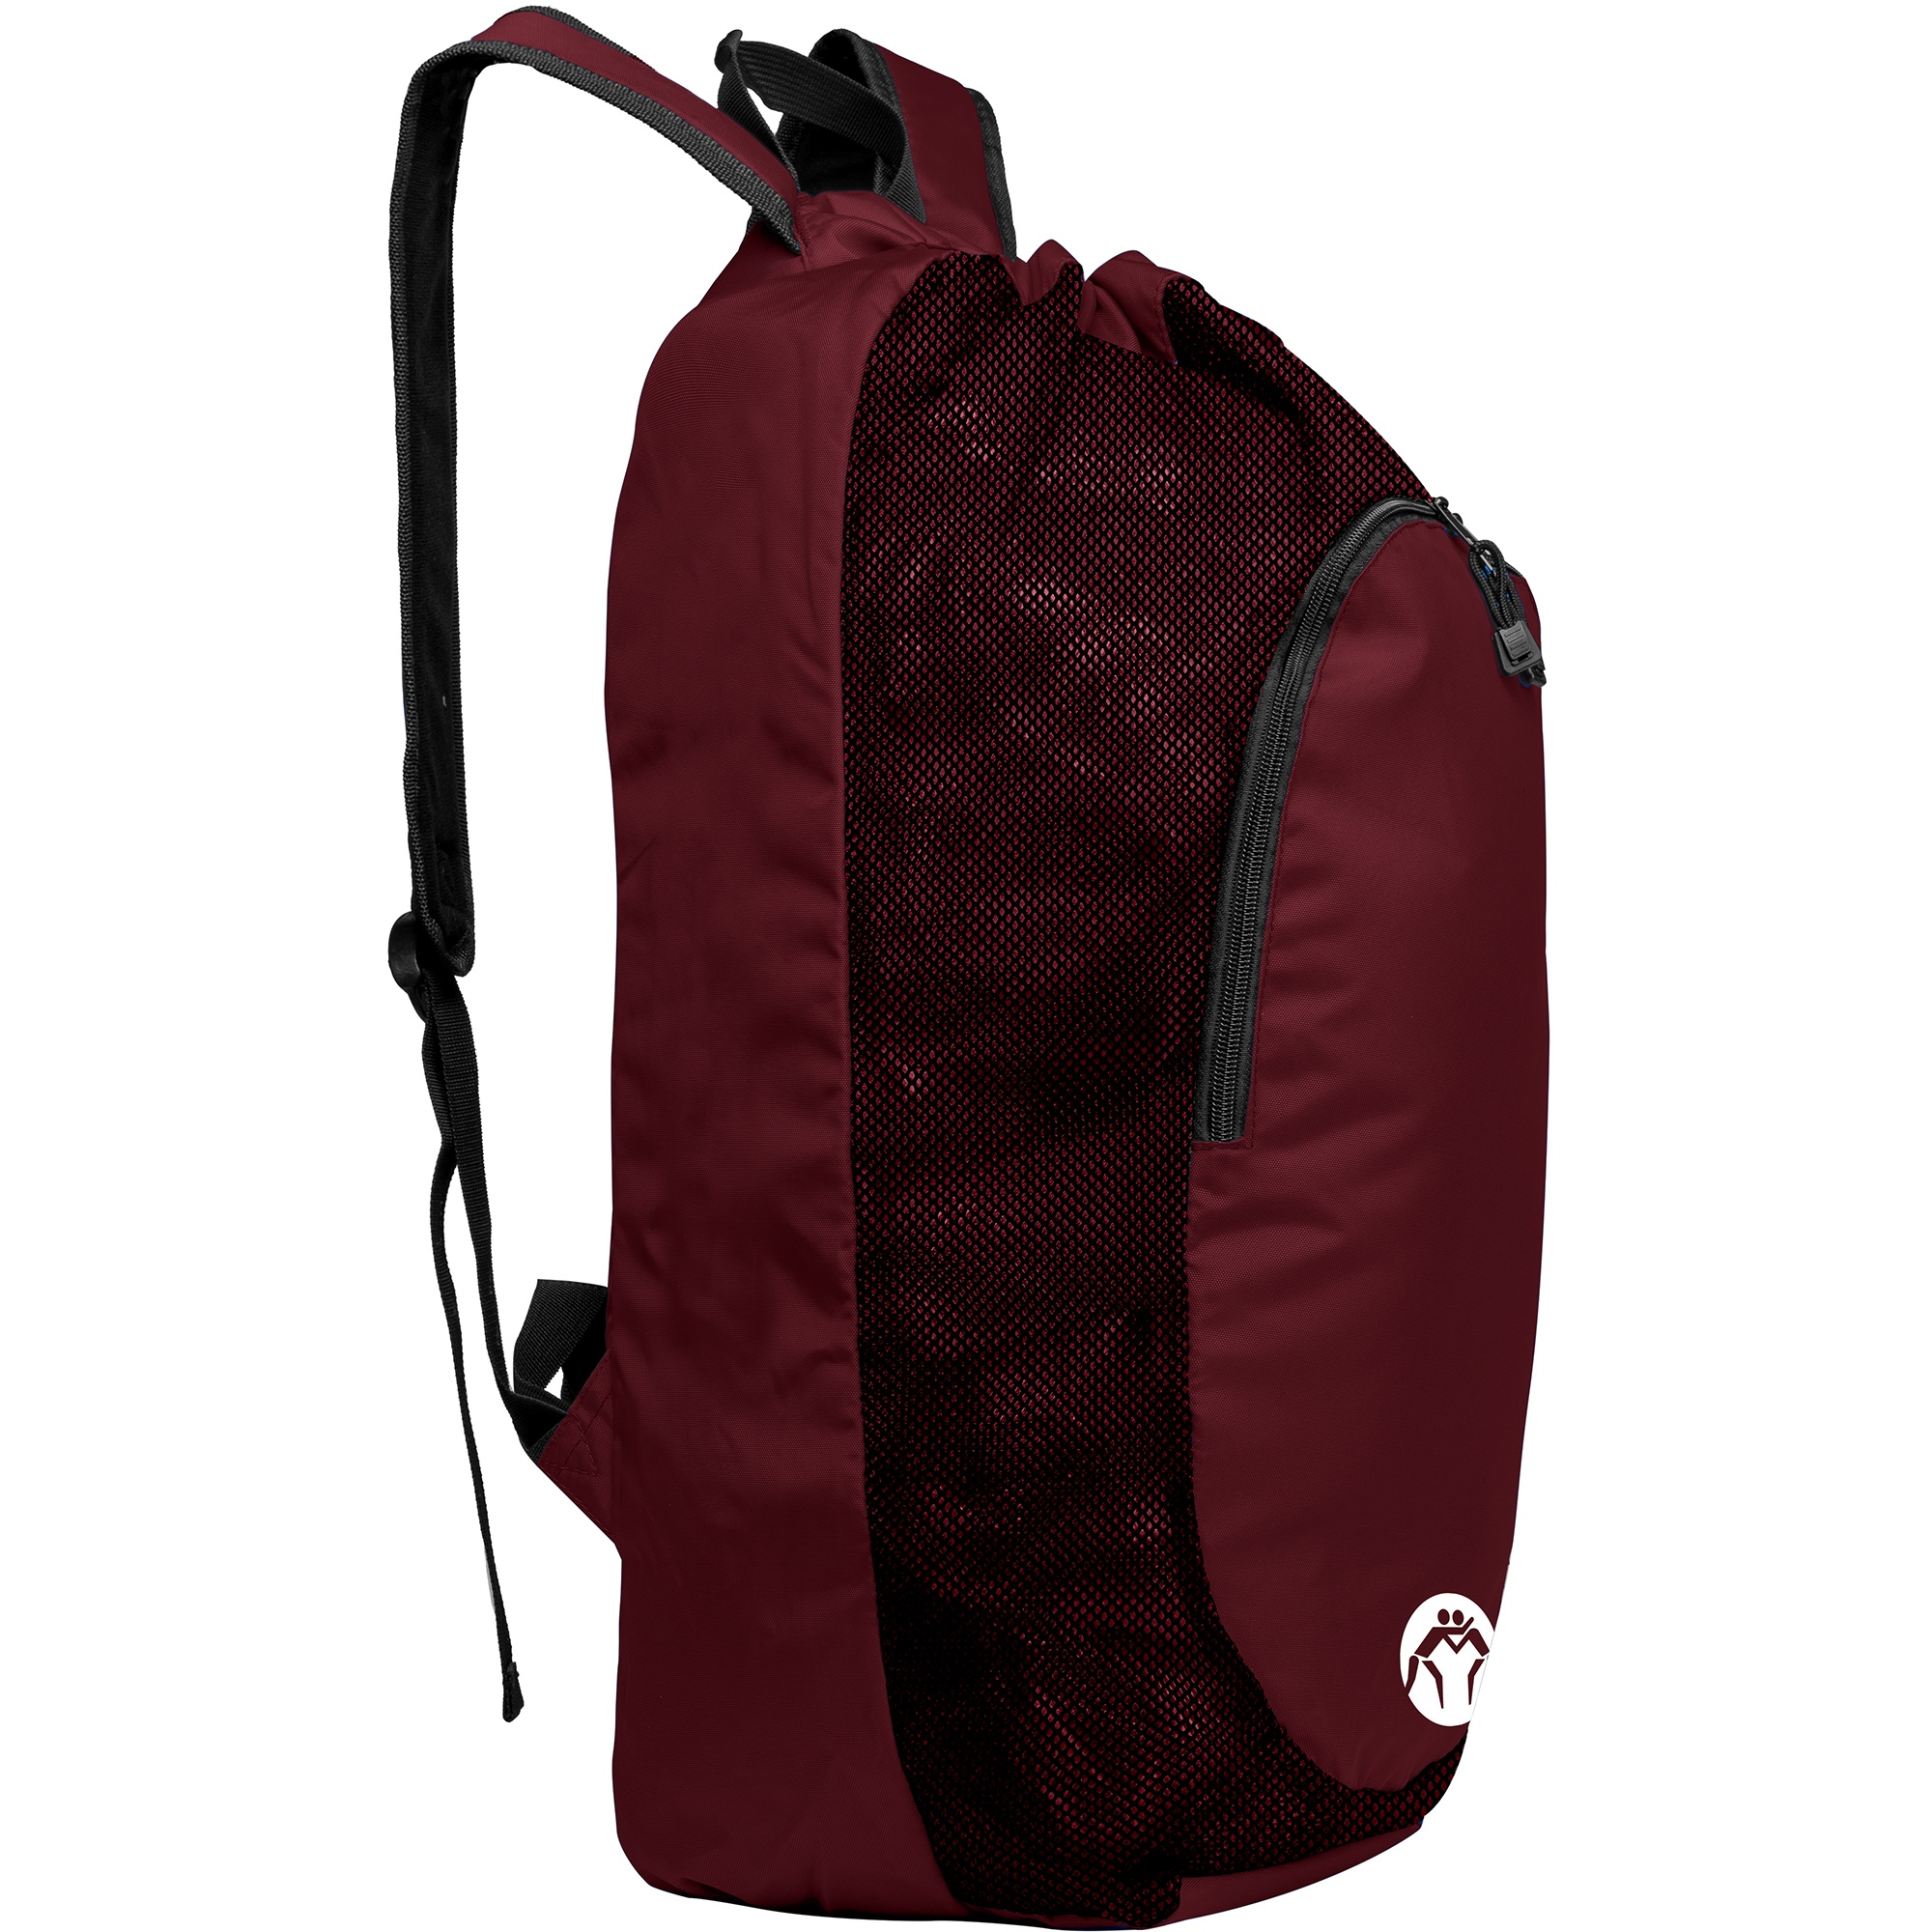 6bf54d1b07 WrestlingMart Gear Bag Maroon mainWrestlingMart ...